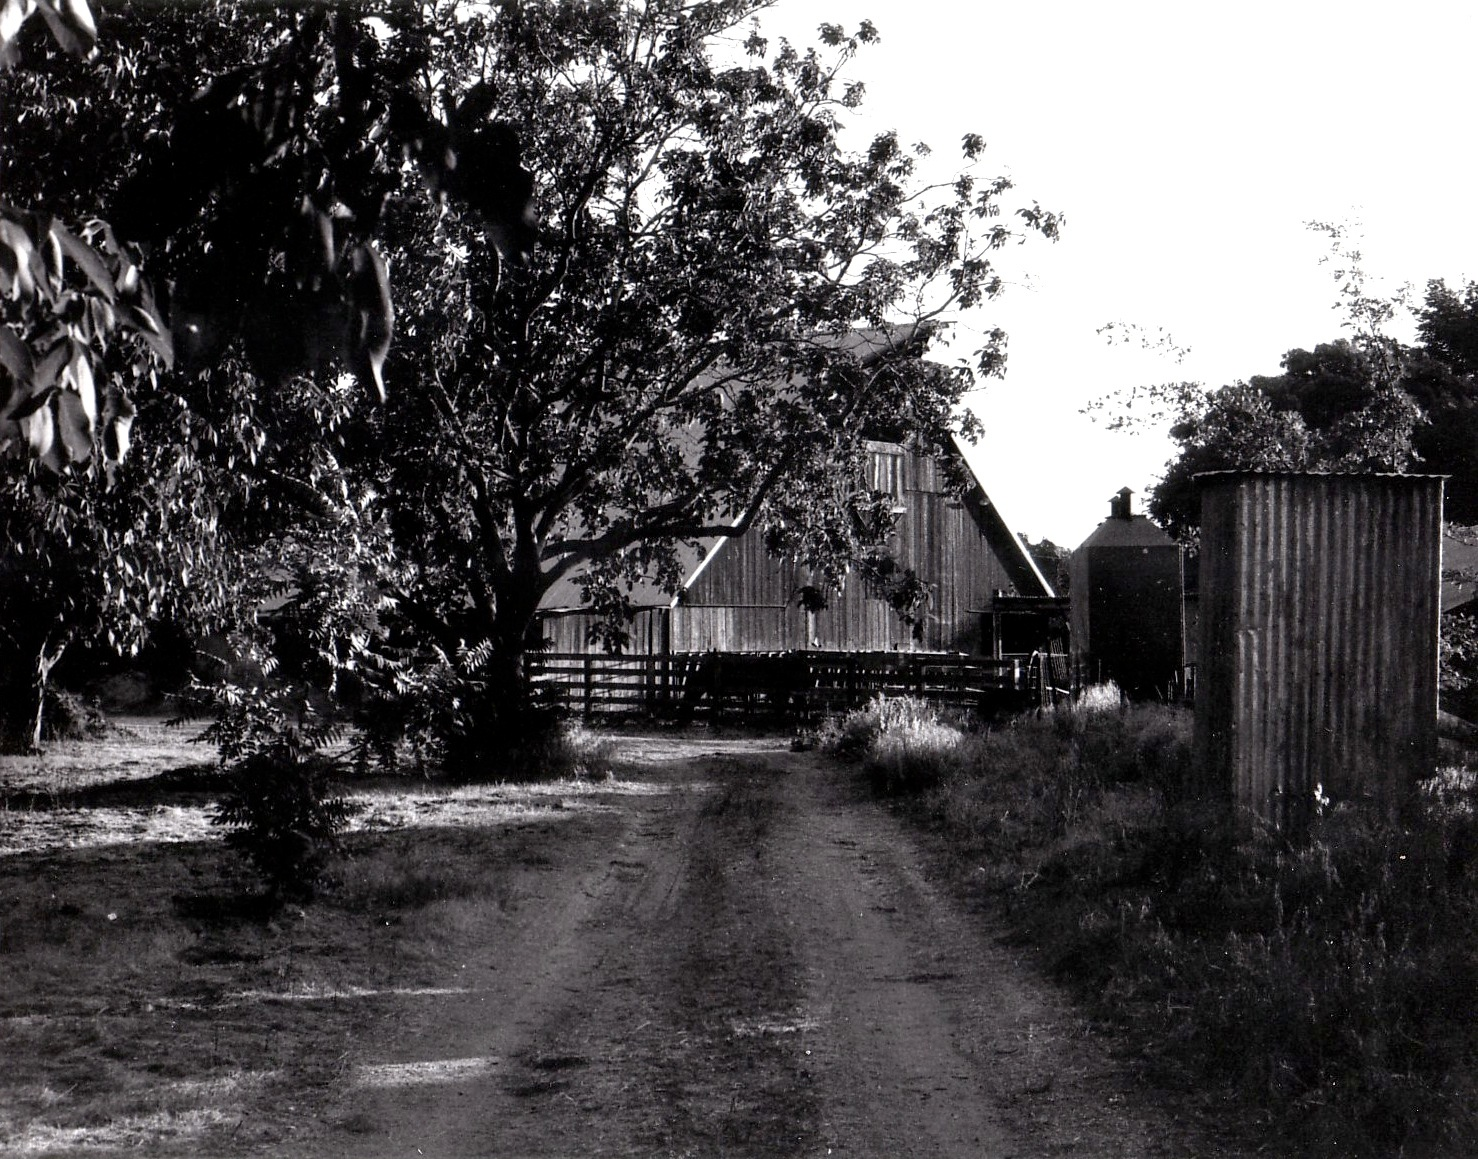 Farther Away Barn in Black and White